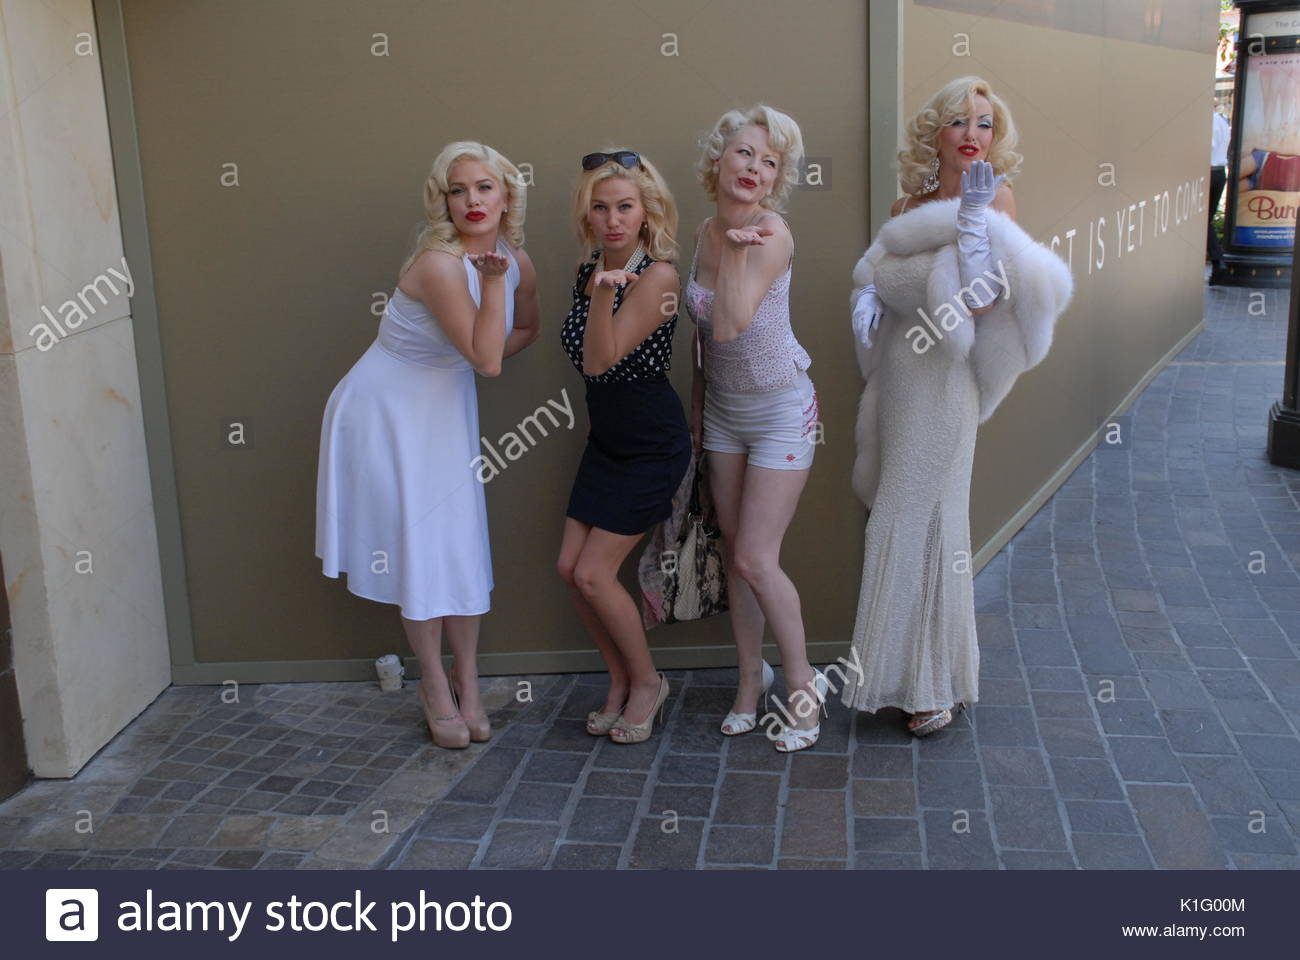 Marilyn Monroe impersonators. Marilyn Monroe impersonators at The Grove in celebration of the starlet's birthday. - Stock Image